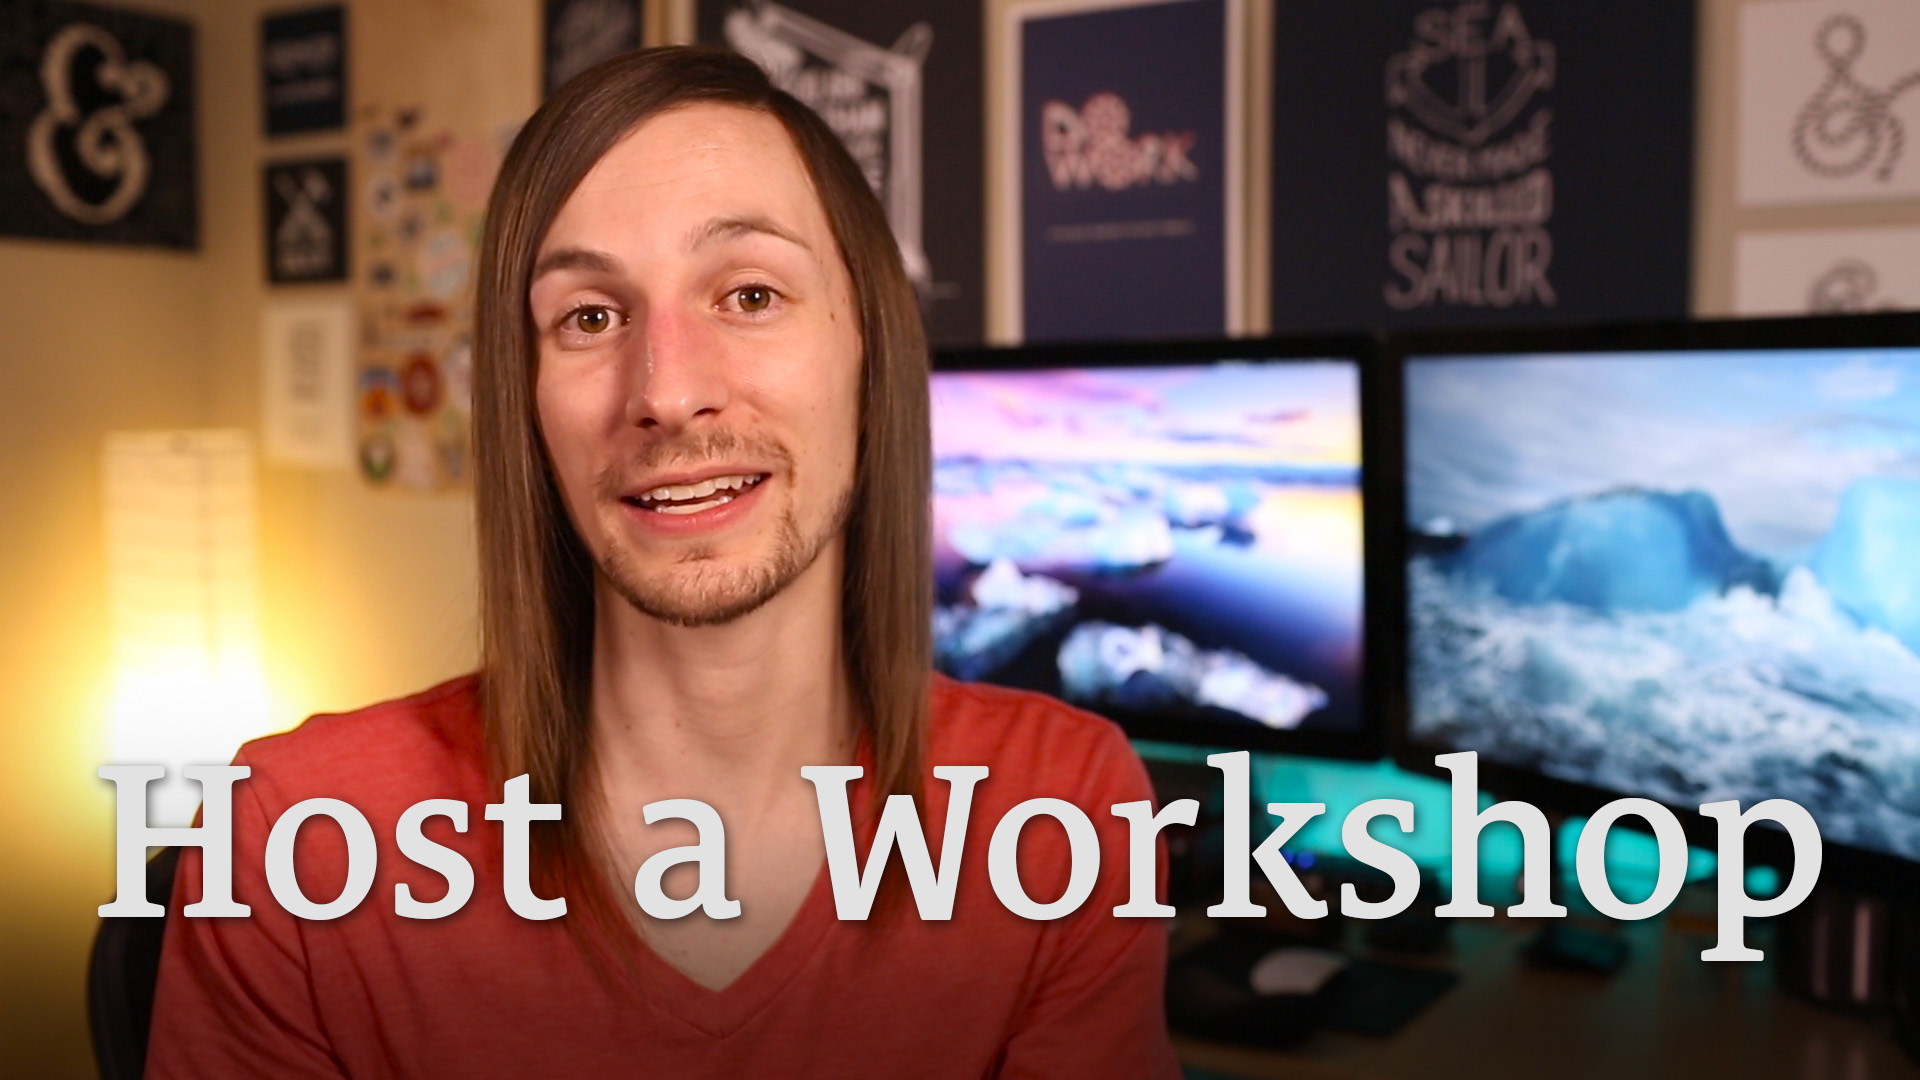 How to Host a Workshop